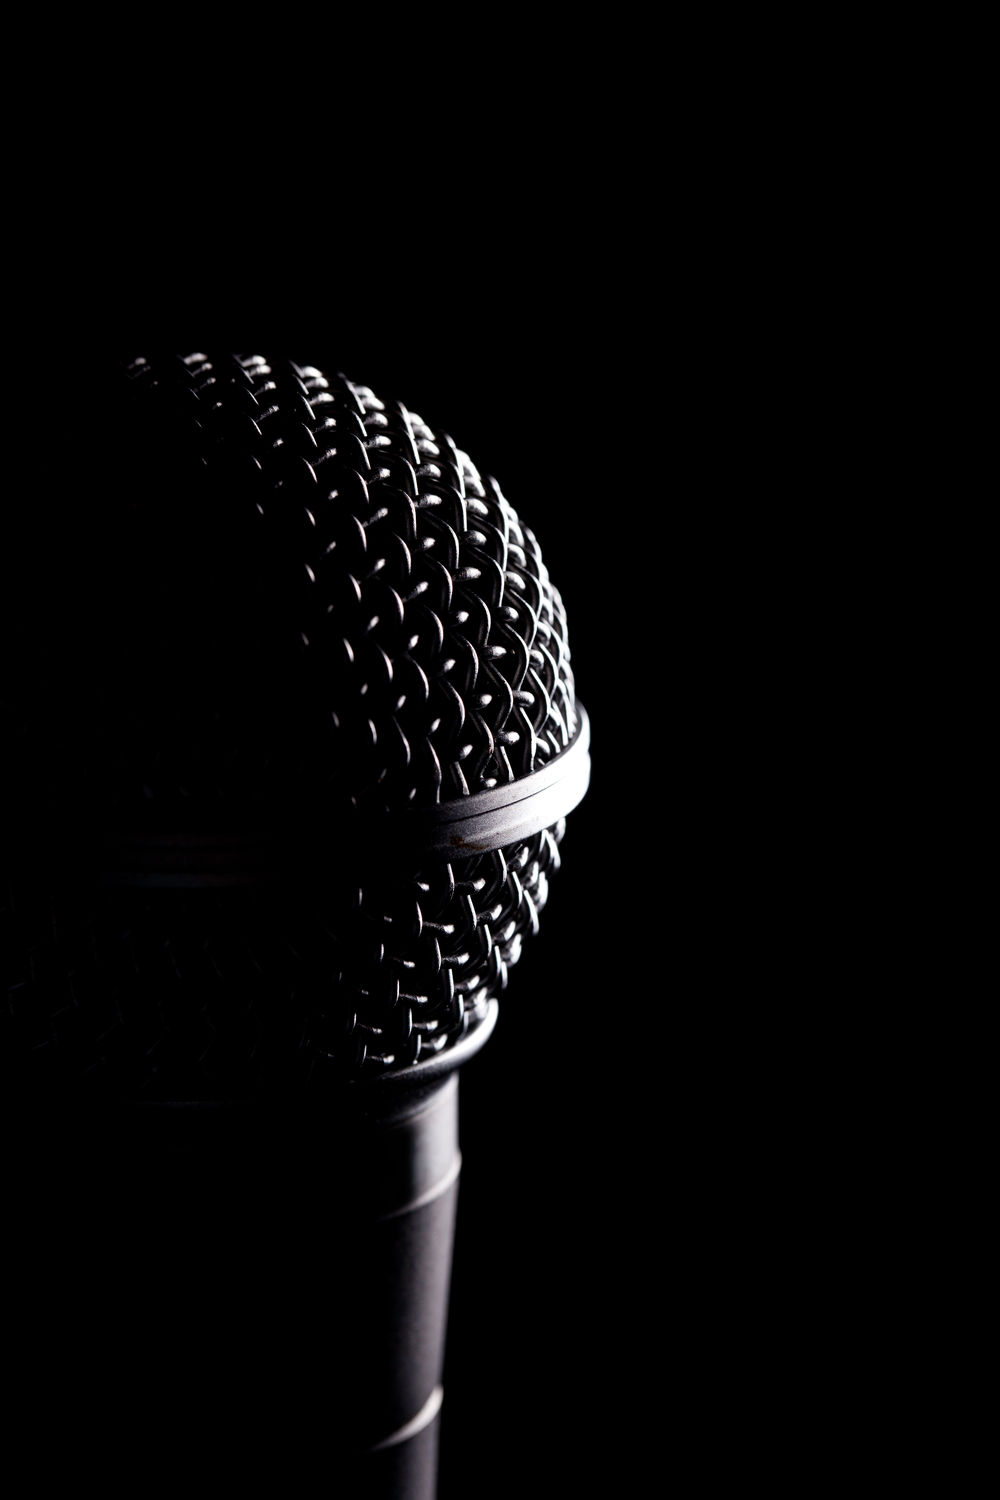 Handheld Microphone close up. Courtesy of Shutterstock